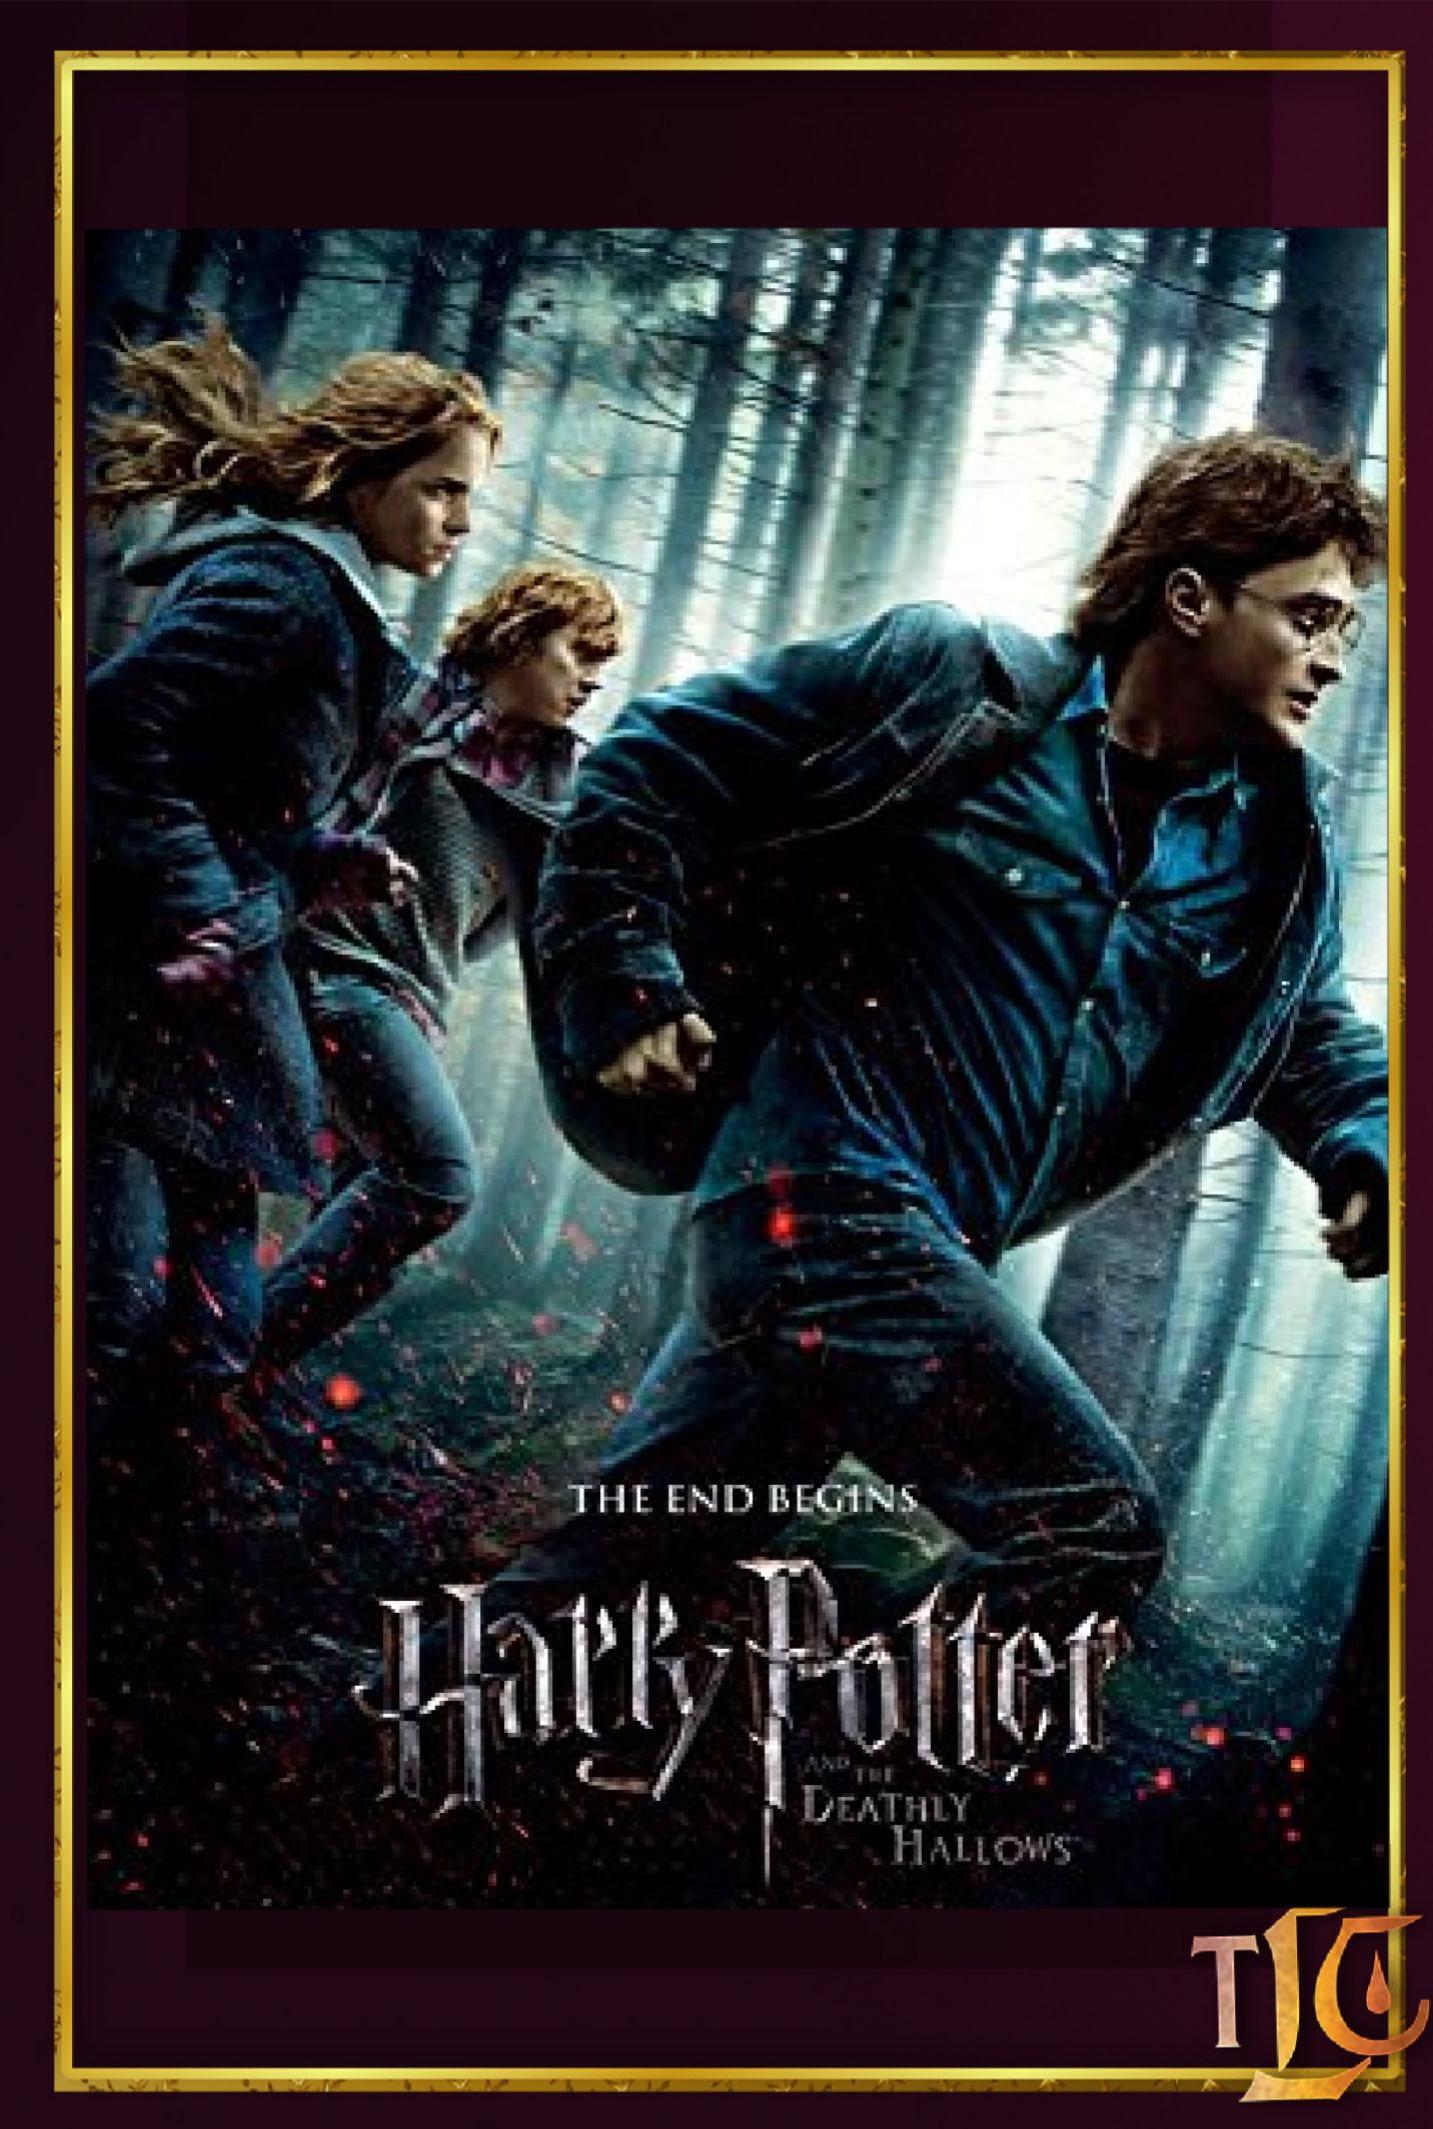 Harry Potter And The Deathly Hallows Part 1 Time For A Rewatch Harry Potter Movie Posters Deathly Hallows Part 1 Deathly Hallows Movie